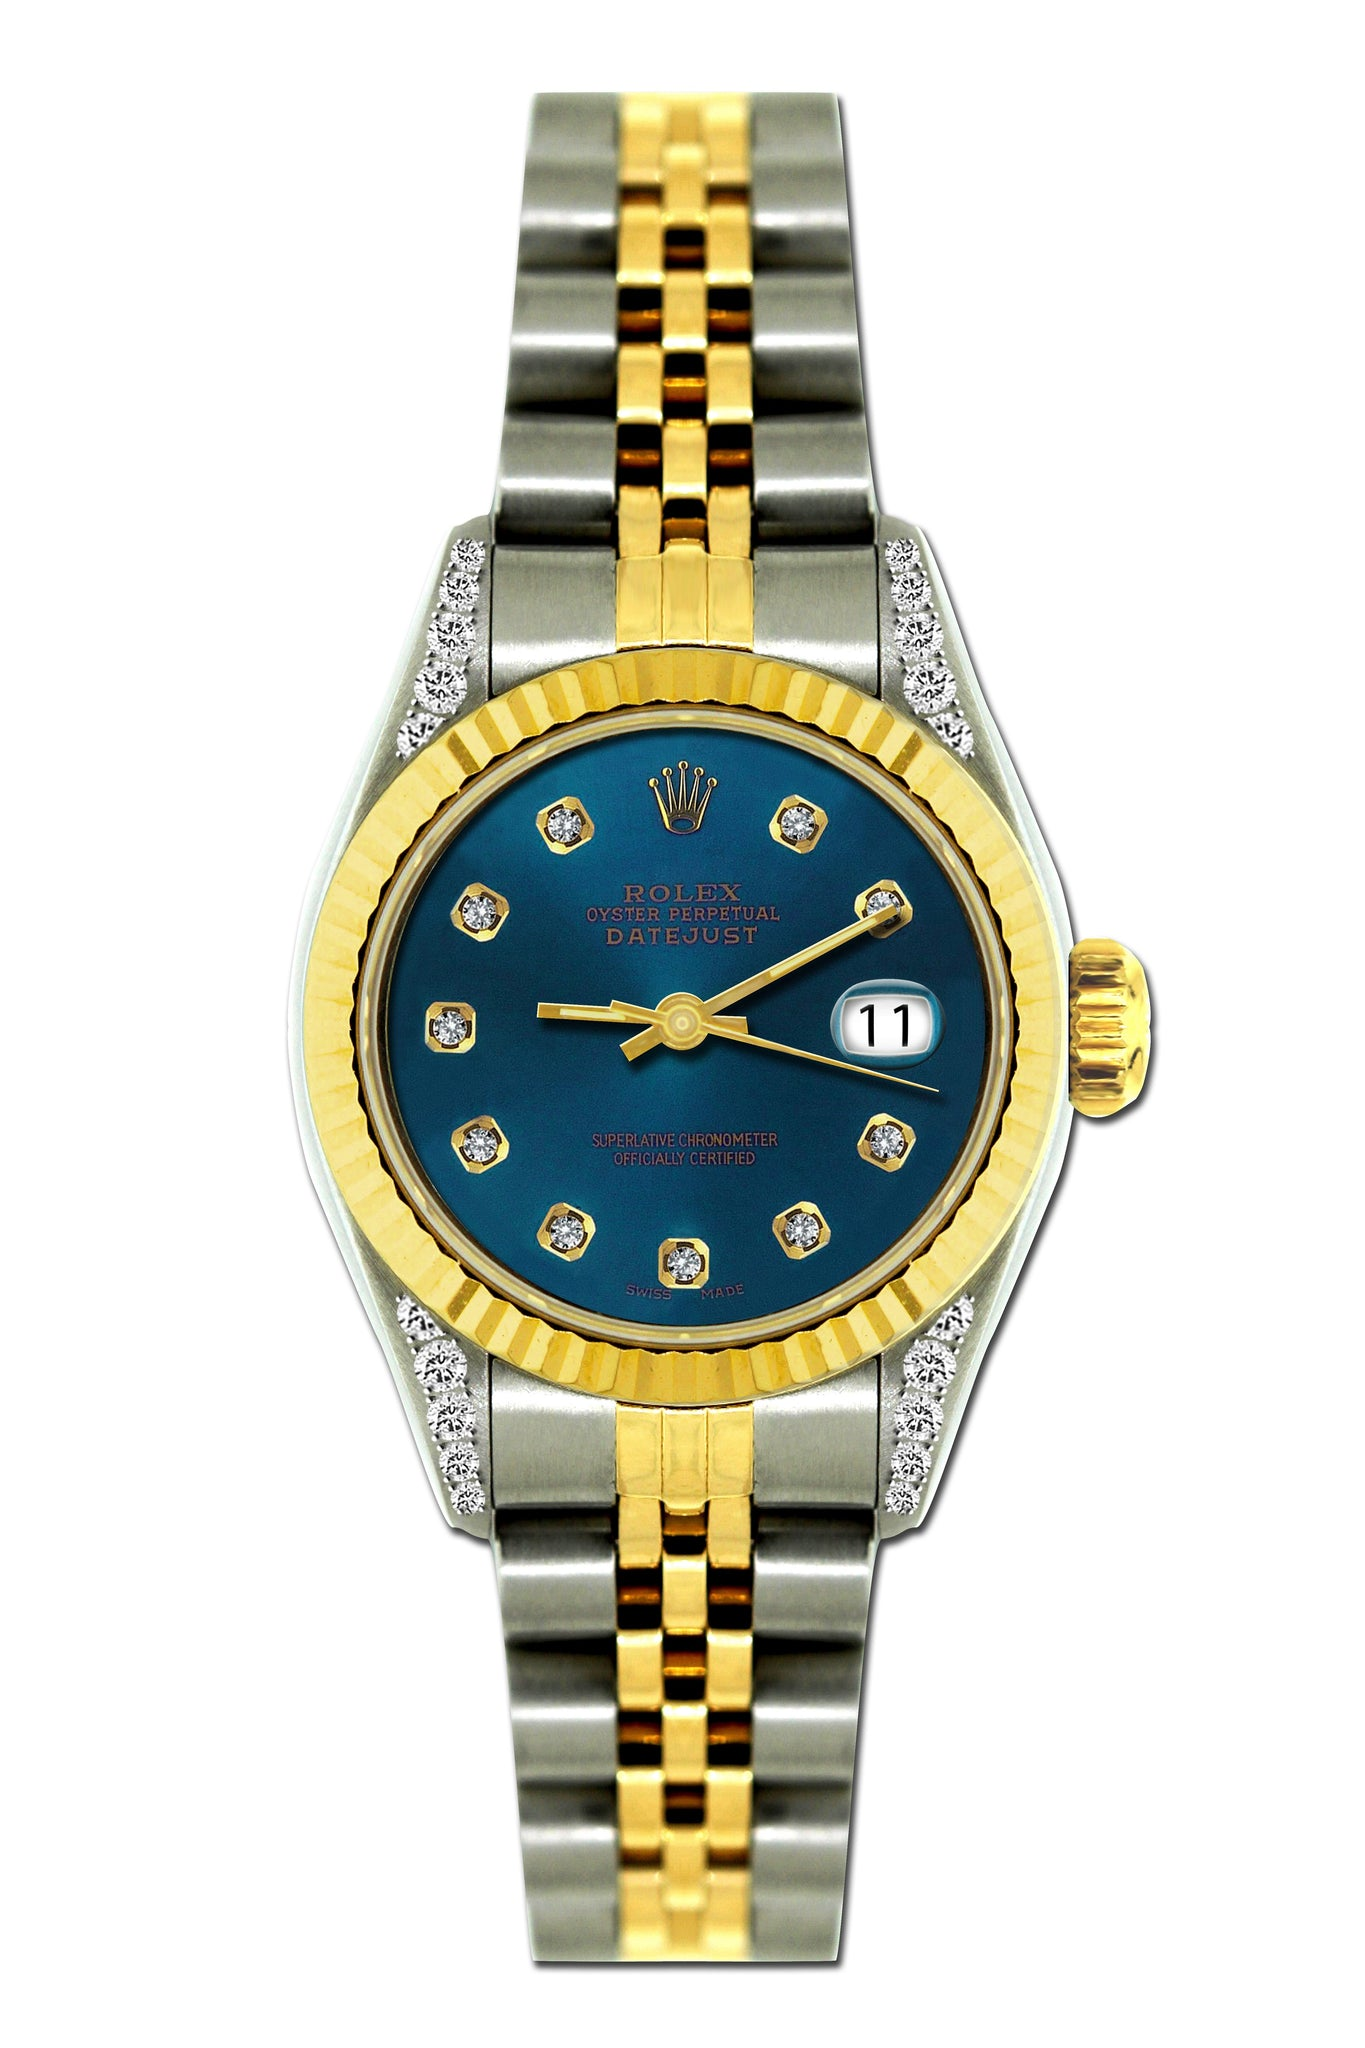 Rolex Datejust Diamond Watch, 26mm, Yellow Gold and Stainless Steel Bracelet Blue Whale Dial w/ Diamond Lugs